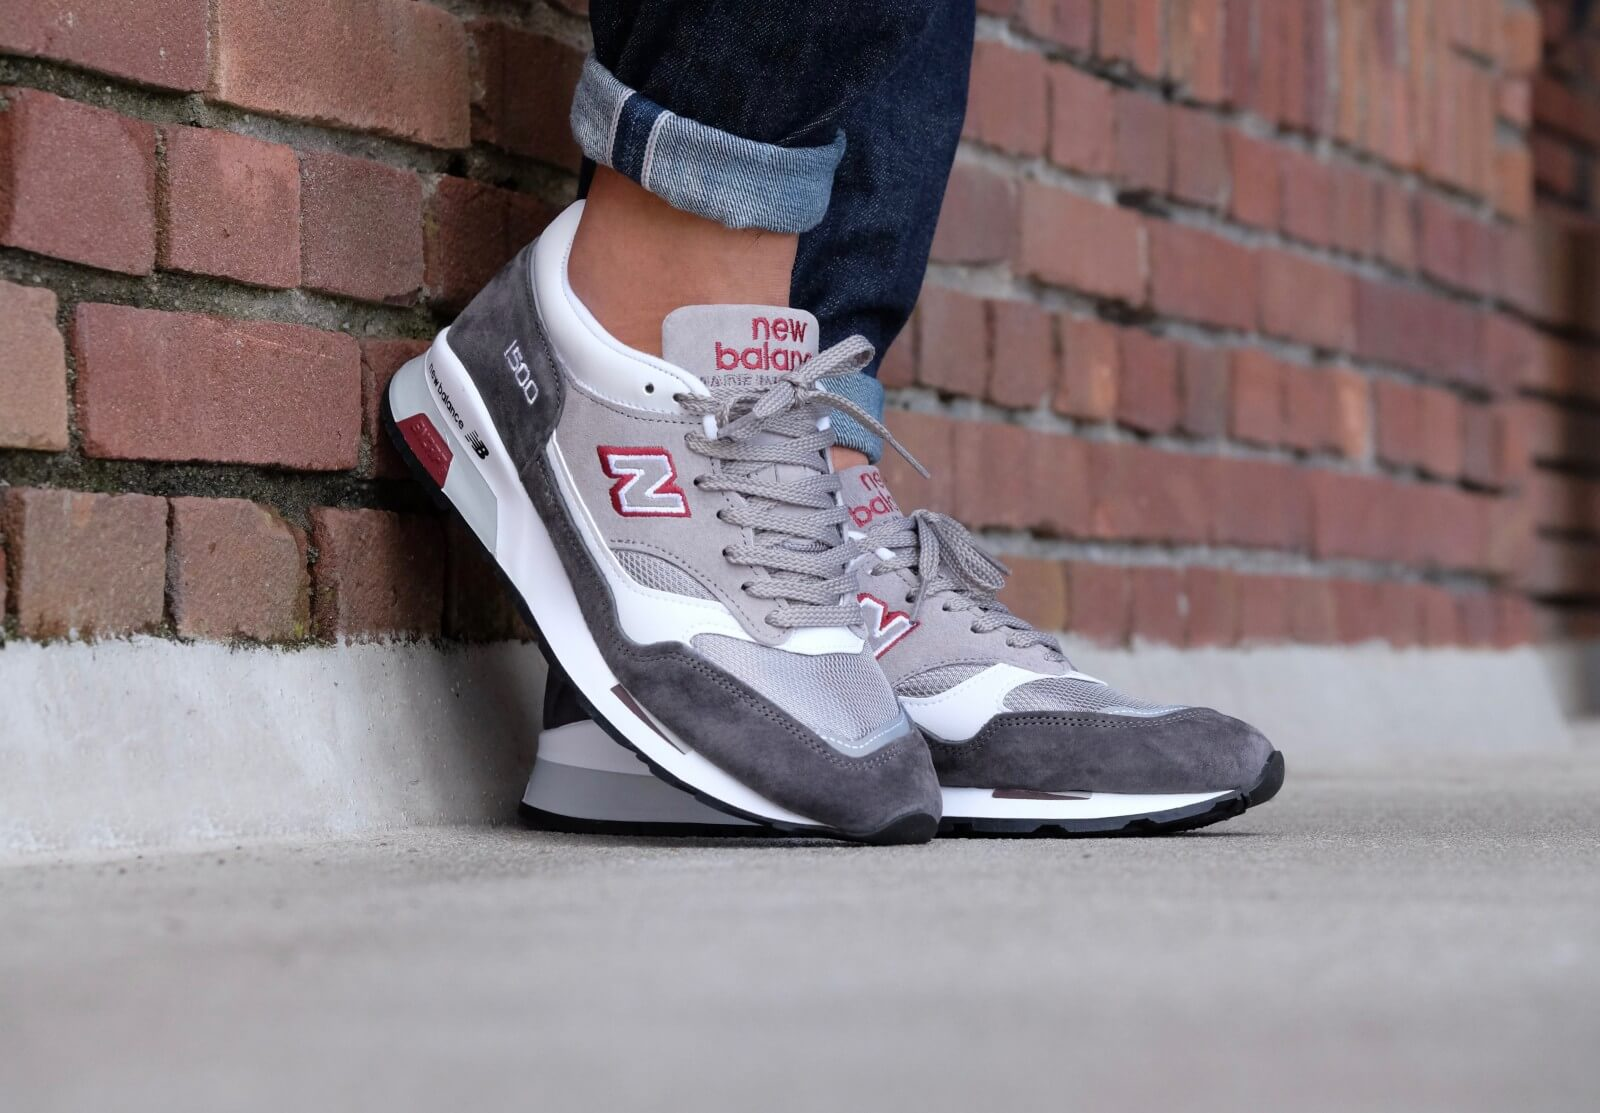 new balance m1500 grw grey with red white 5450416012